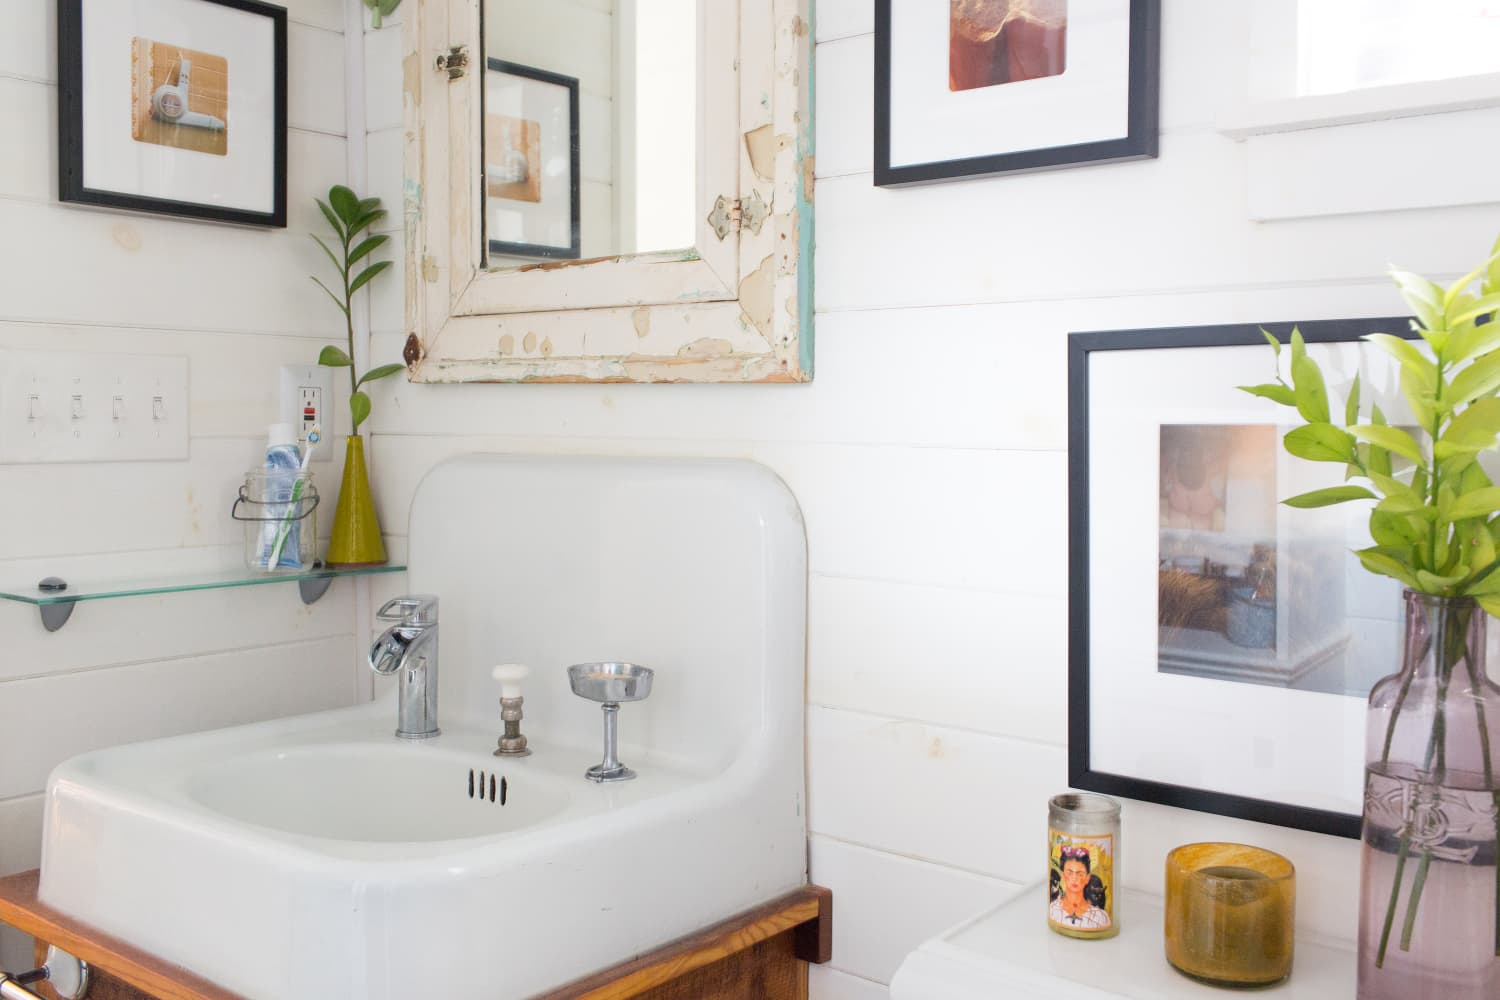 There's One Part of Every Bathroom That Needs an Inside-Out Deep Clean